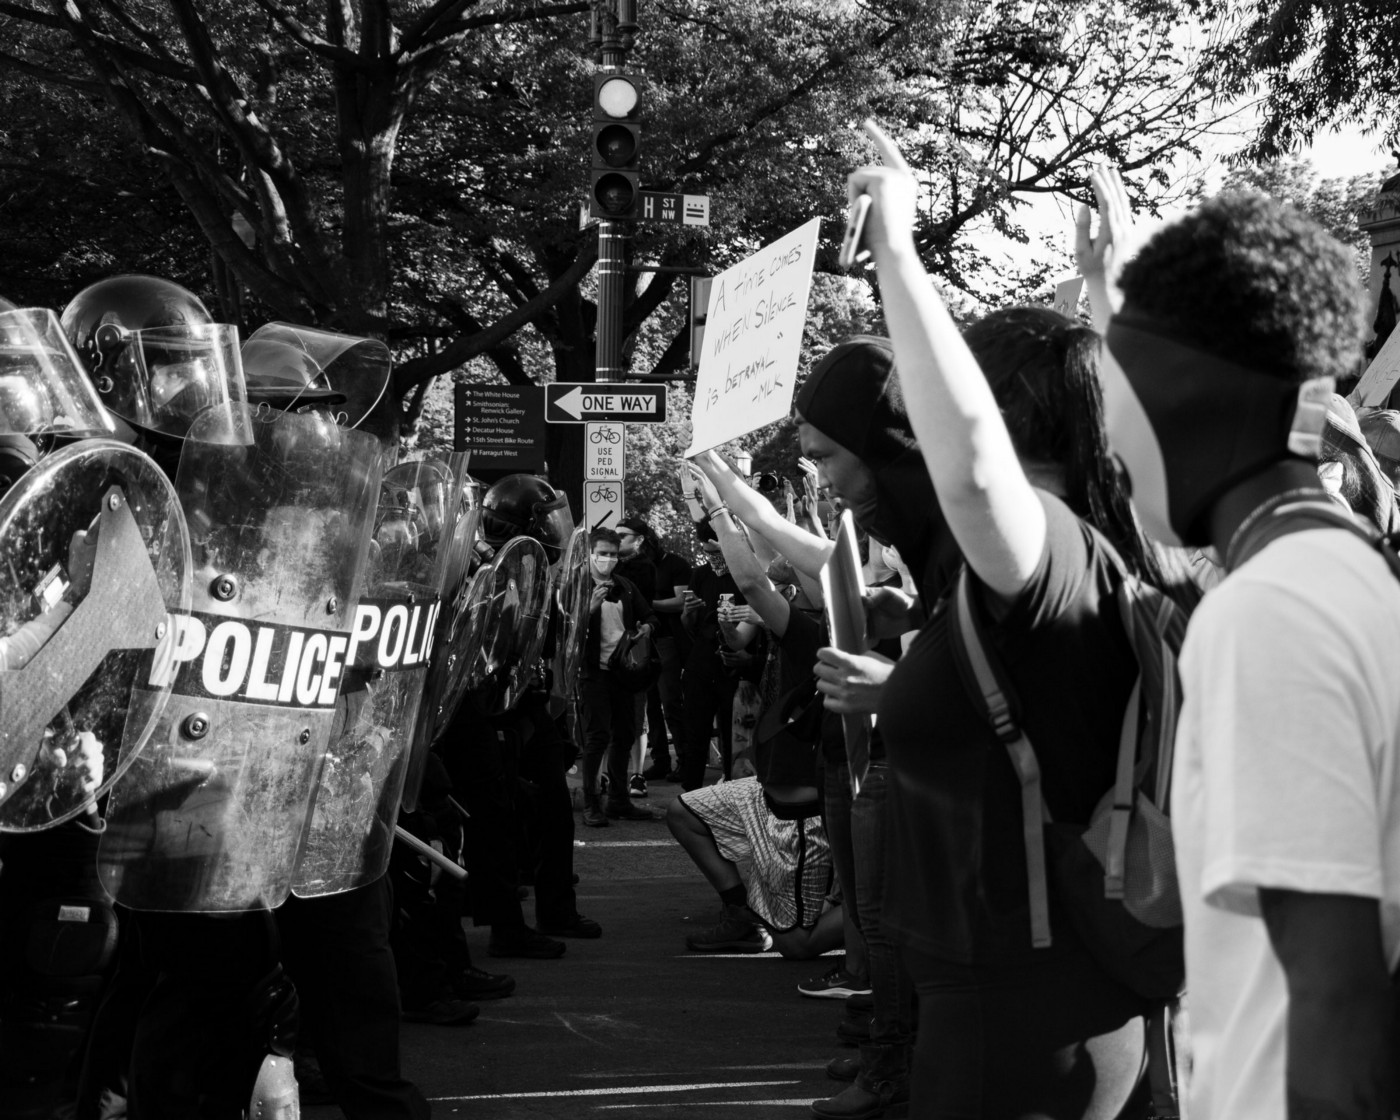 A photo of a Black Lives Matter protest showing a row of police on the left and a row of protested on the right